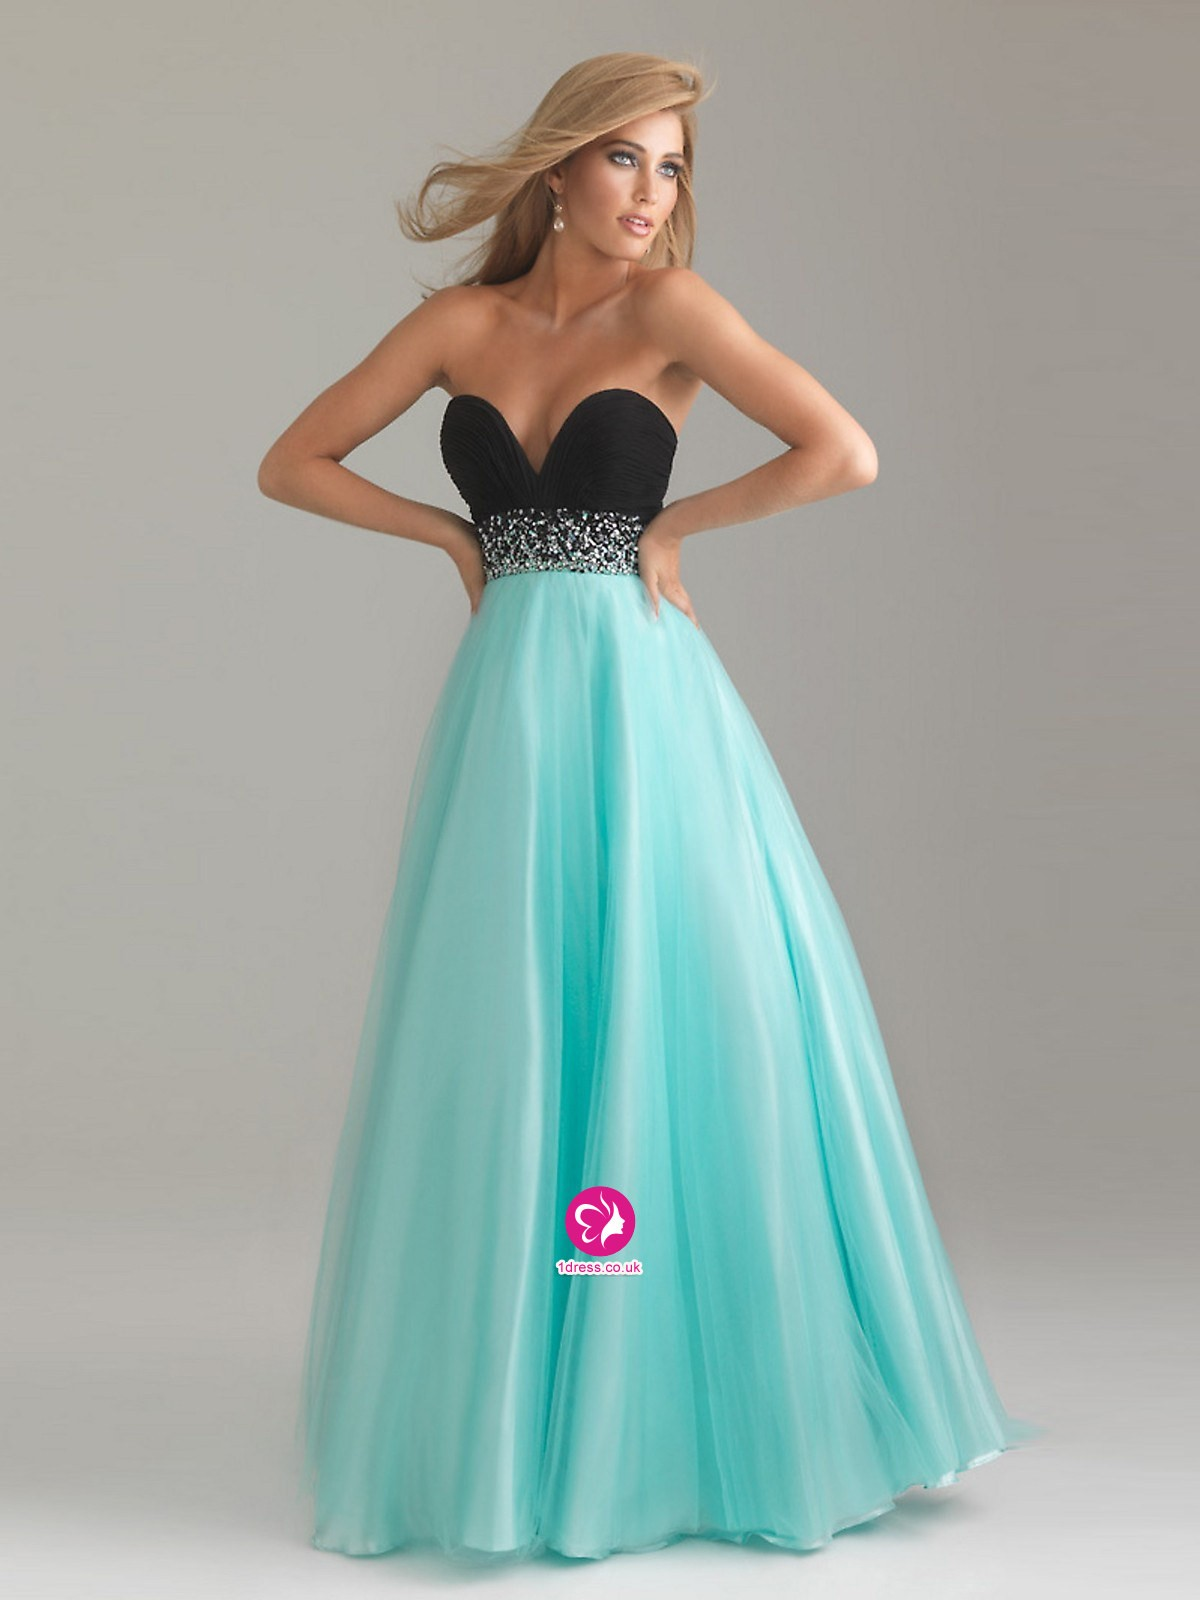 Prom Dresses High School - Boutique Prom Dresses